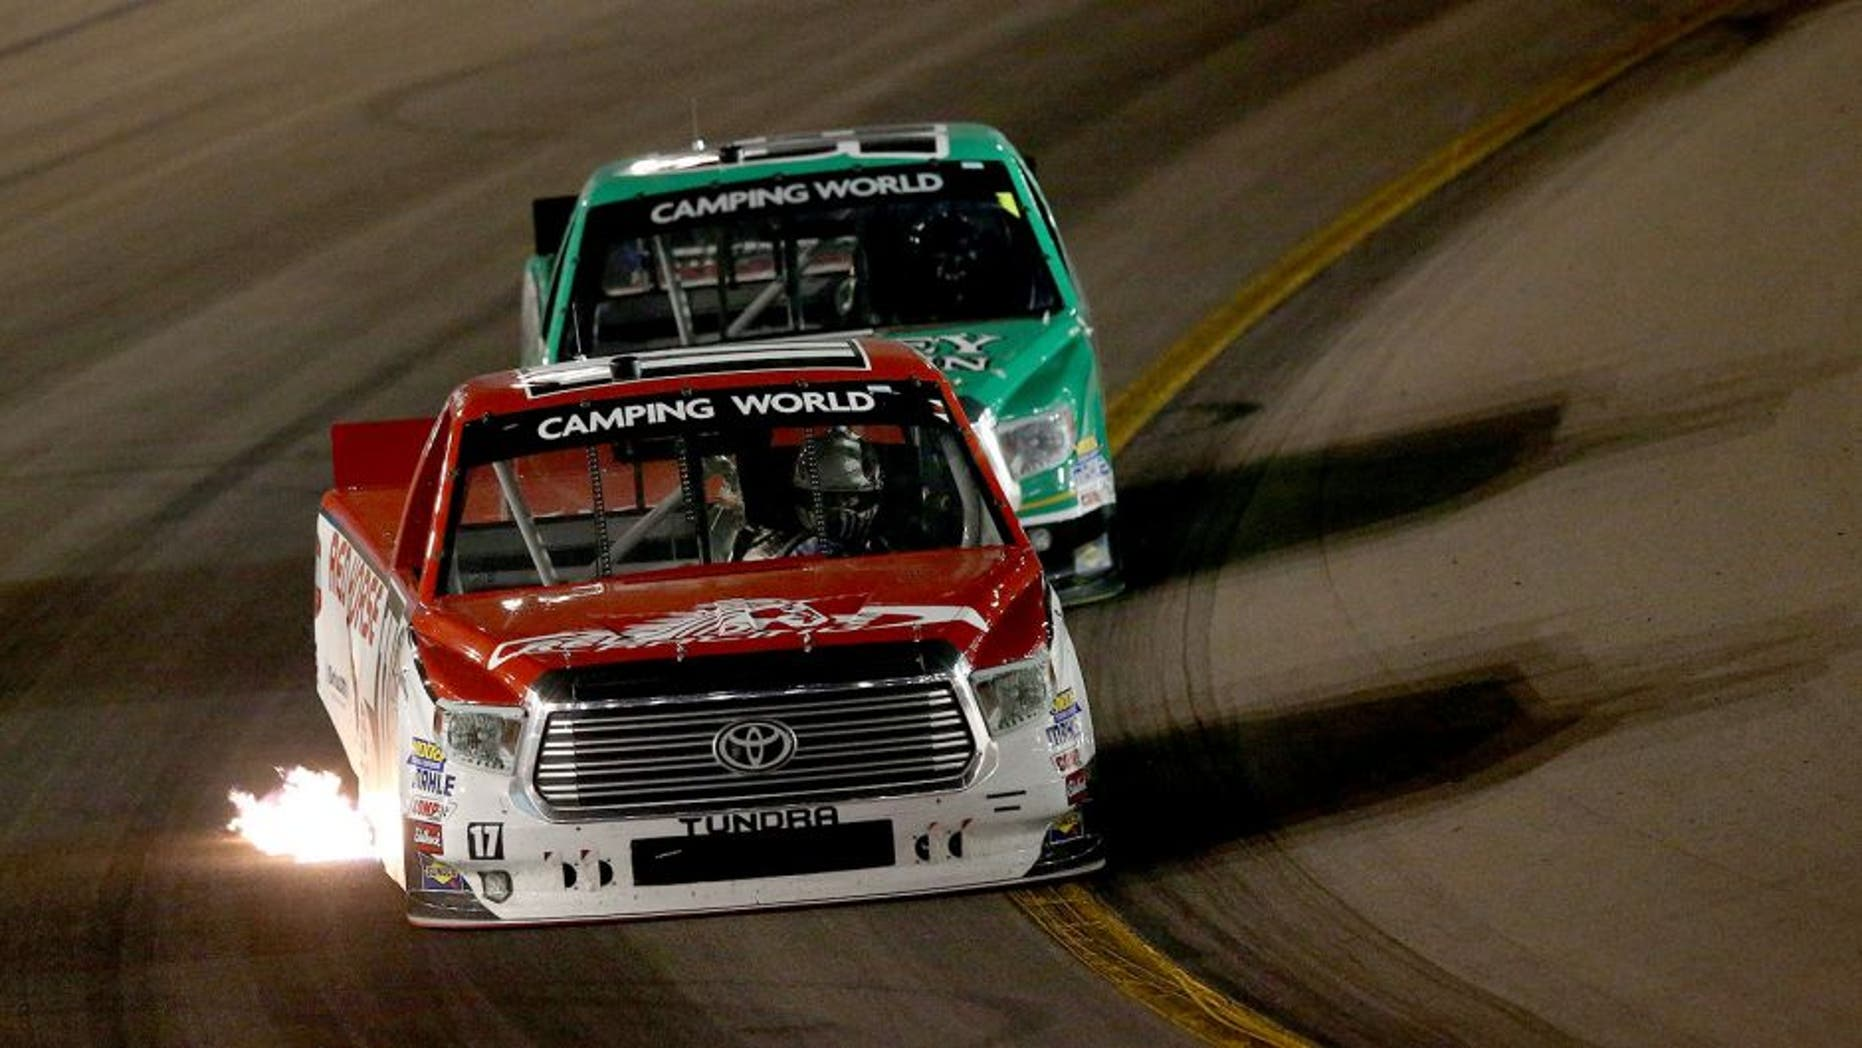 AVONDALE, AZ - NOVEMBER 13: Timothy Peters, driver of the #17 Red Horse Racing Toyota, leads Johnny Sauter, driver of the #98 Smokey Mountain/Curb Records Toyota, during the NASCAR Camping World Truck Series Lucas Oil 150 at Phoenix International Raceway on November 13, 2015 in Avondale, Arizona. (Photo by Sean Gardner/Getty Images)